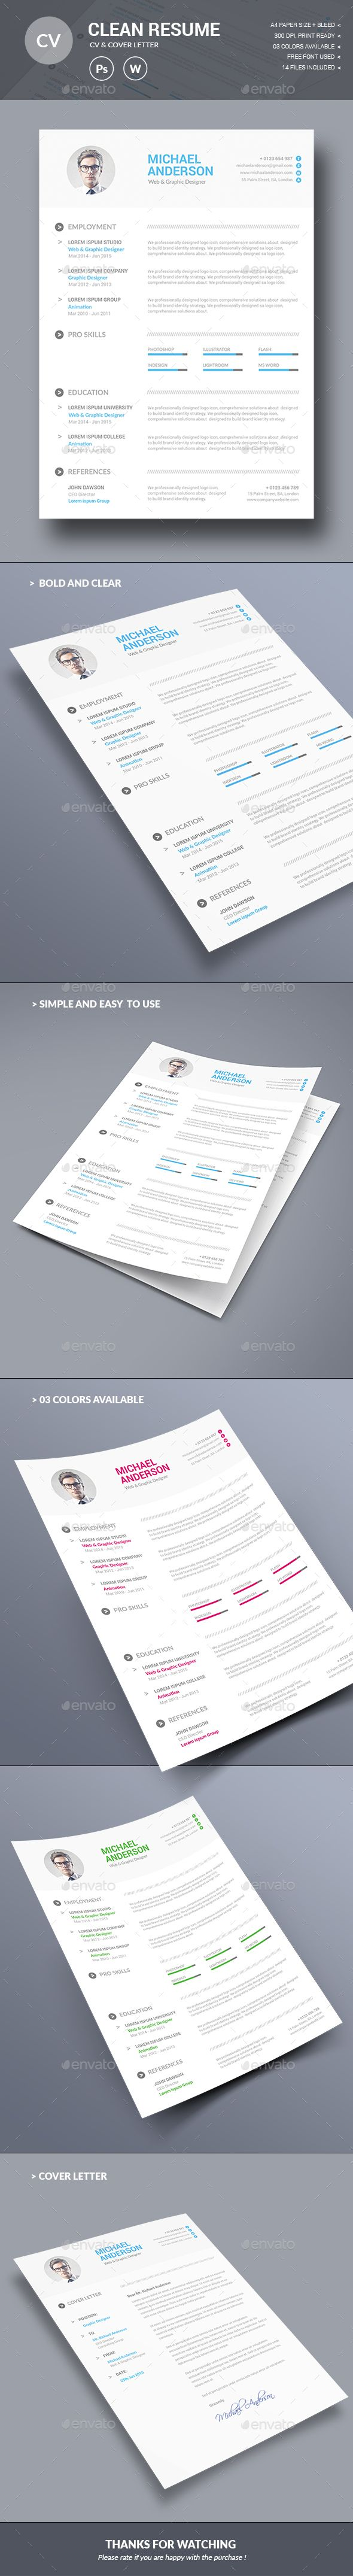 Clean Resume Download%0A Clean Resume CV